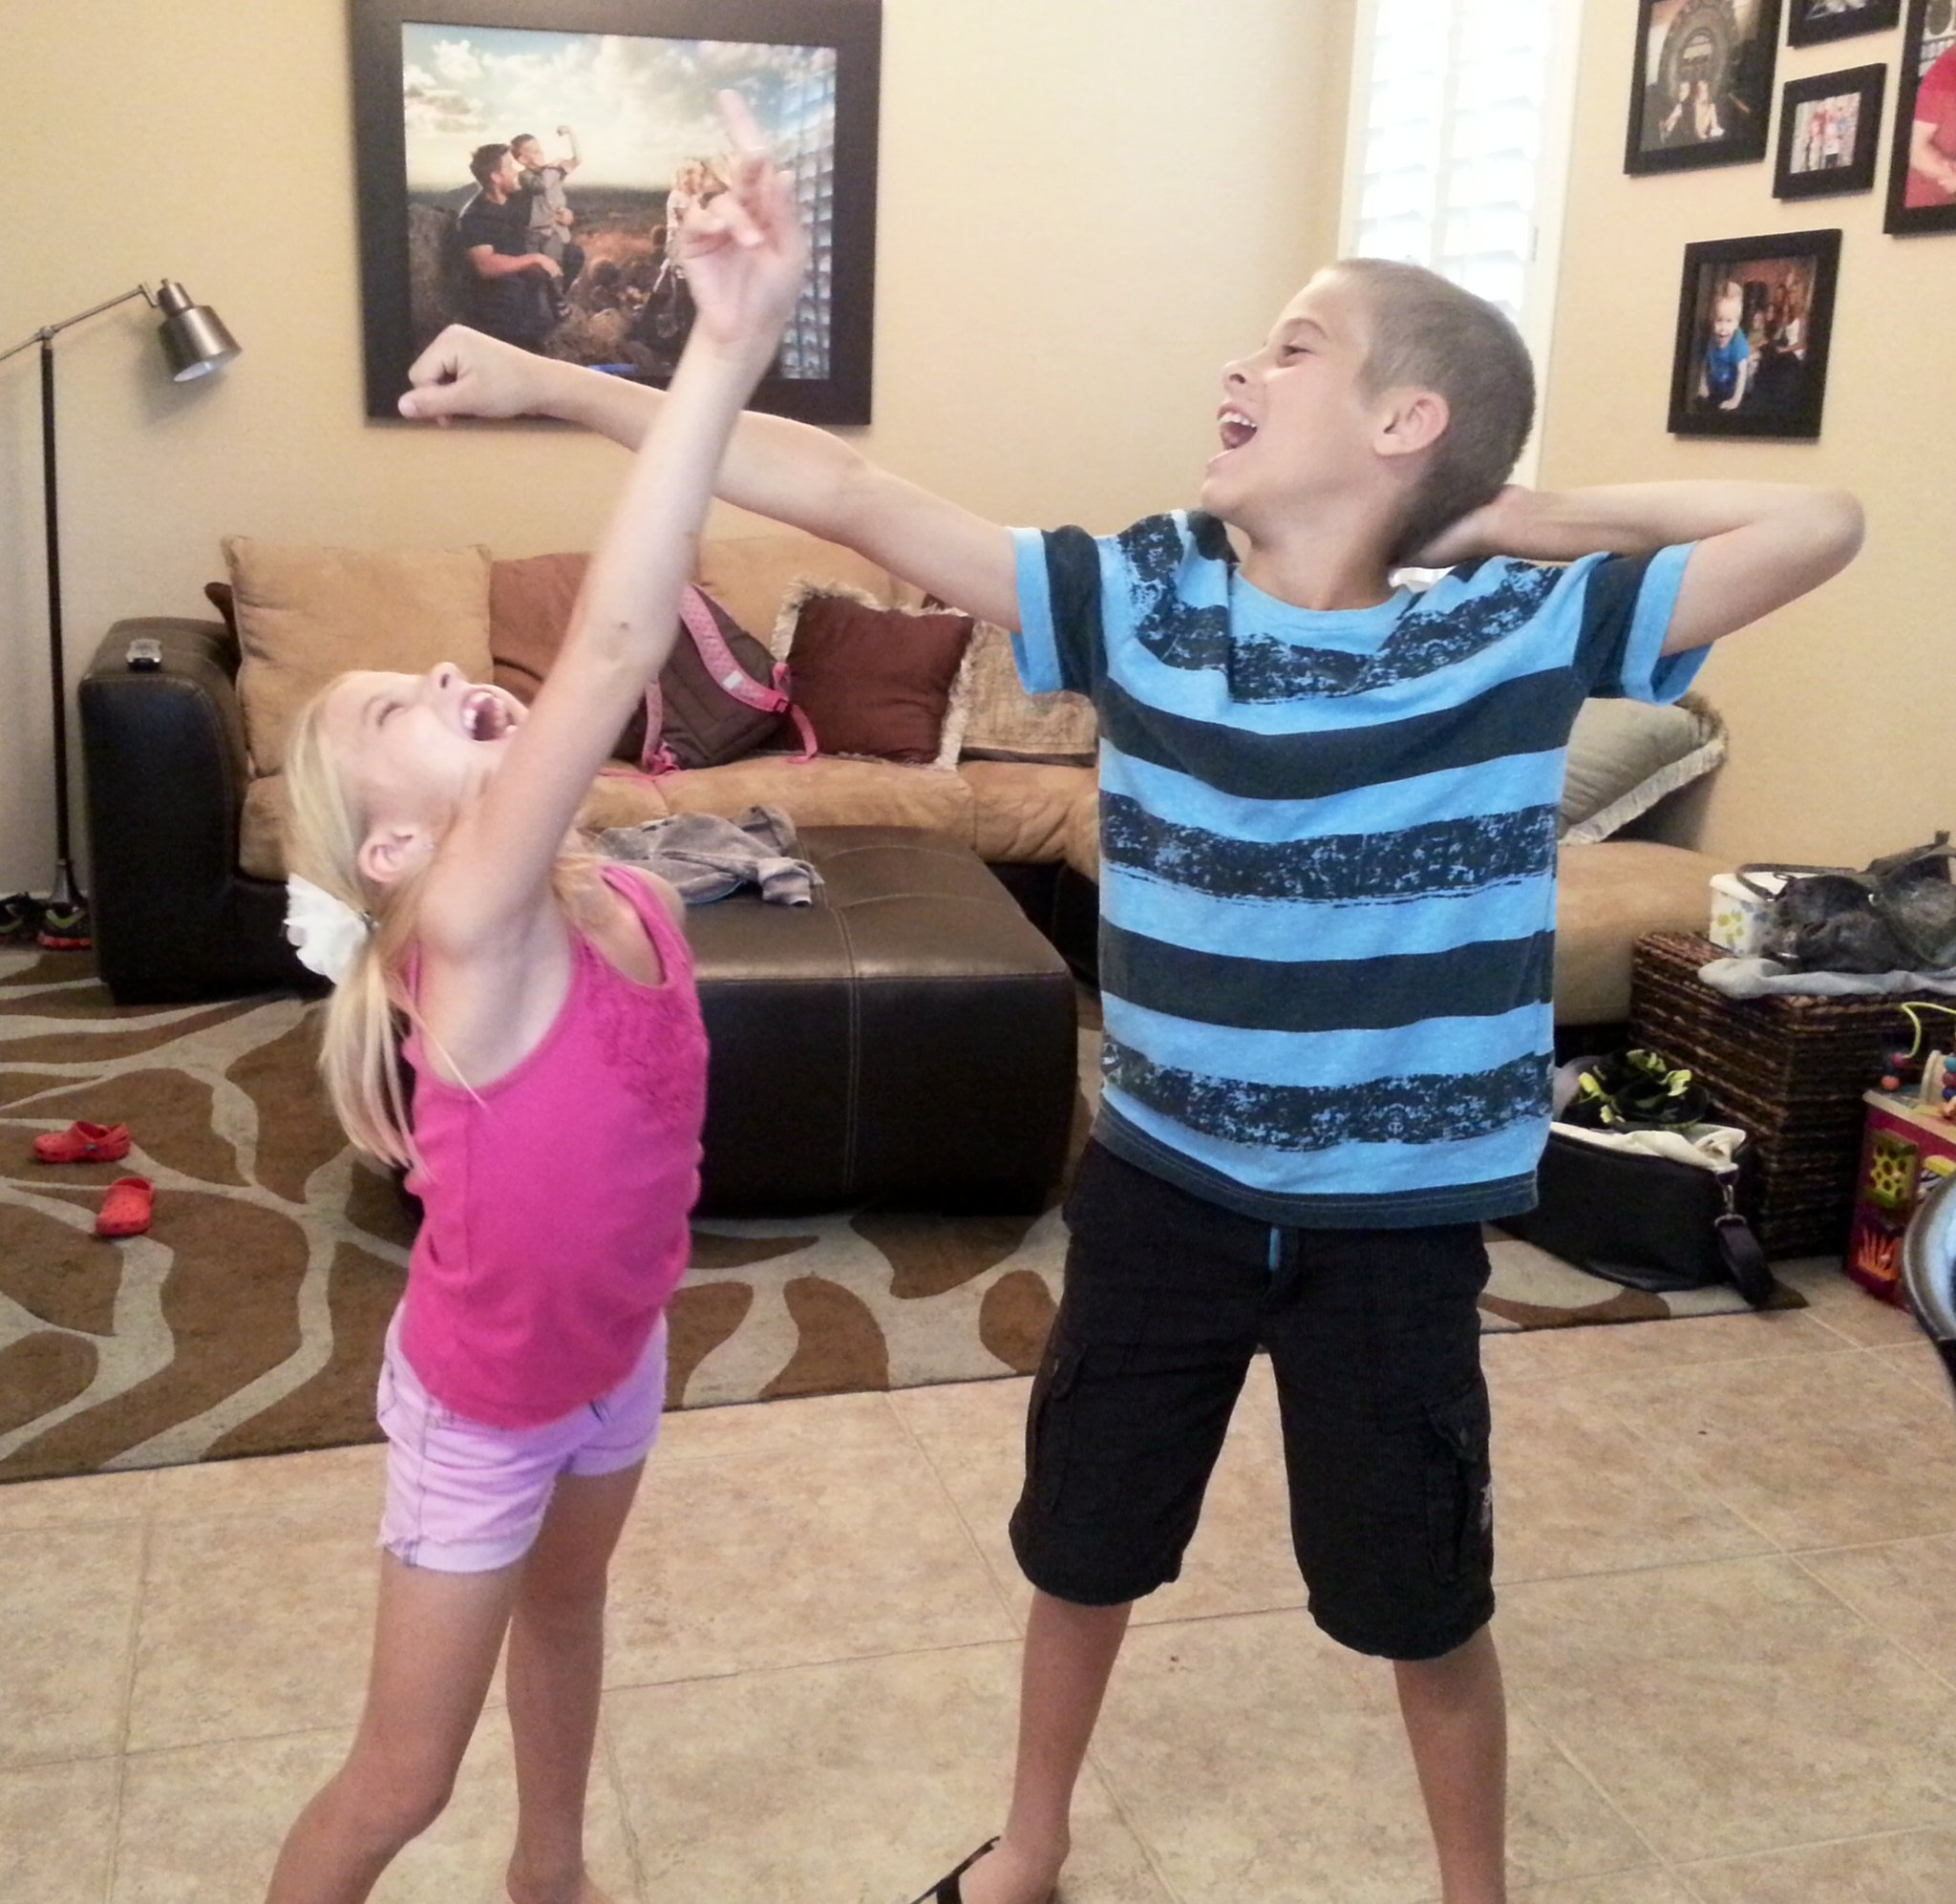 Celebrity Trainer Heidi Powell's kids Matix and Marley dancing to Thriller by Michael Jackson on https://heidipowell.net/4029